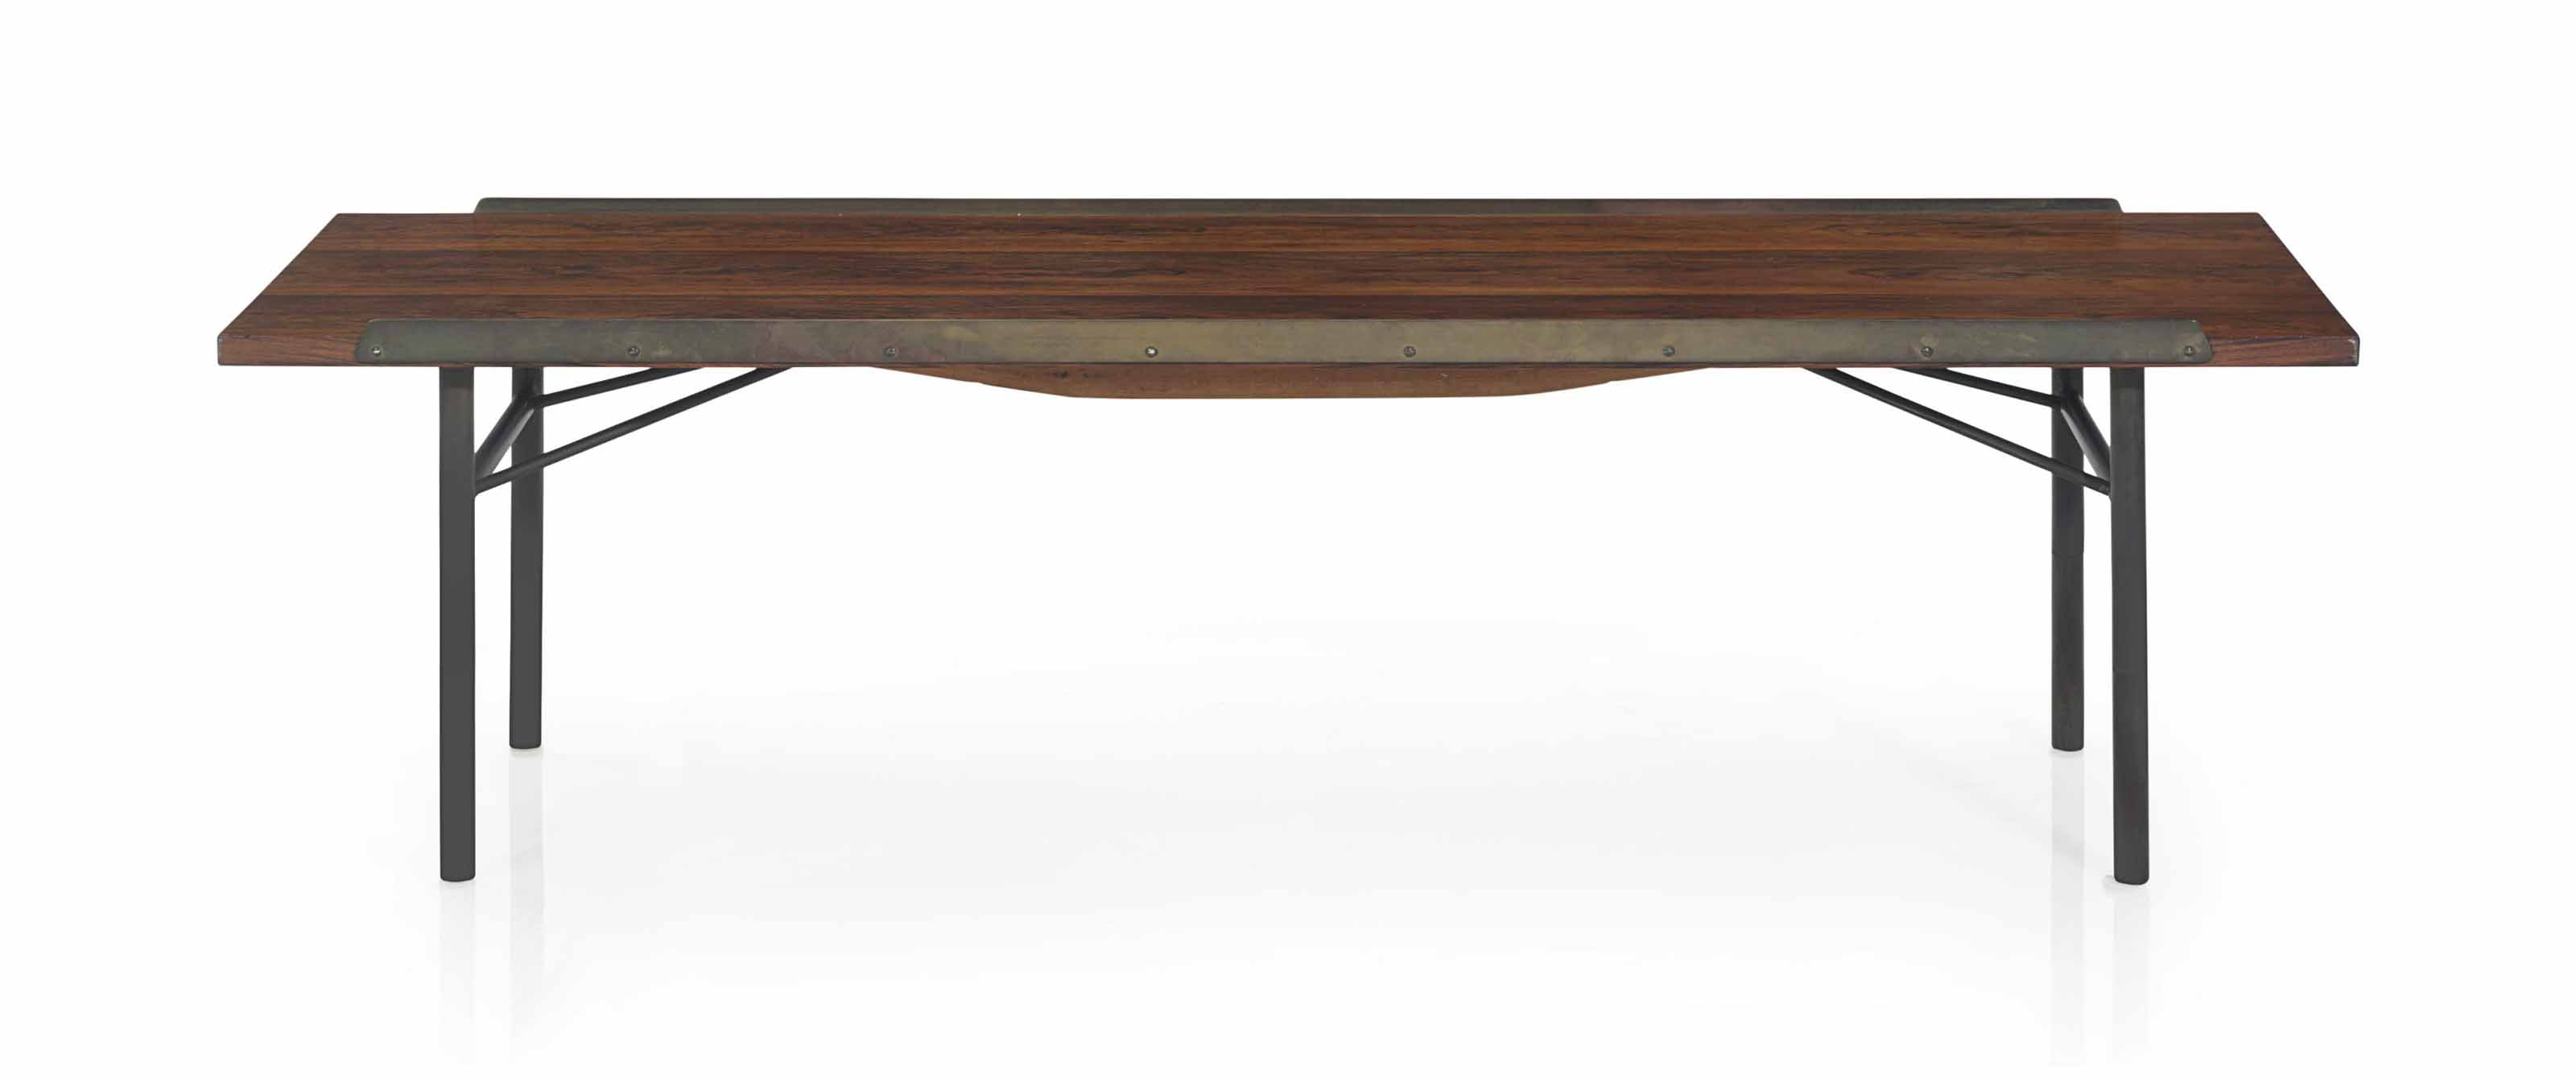 Miraculous Finn Juhl 1912 1989 A Bench Low Table Designed 1953 Pabps2019 Chair Design Images Pabps2019Com